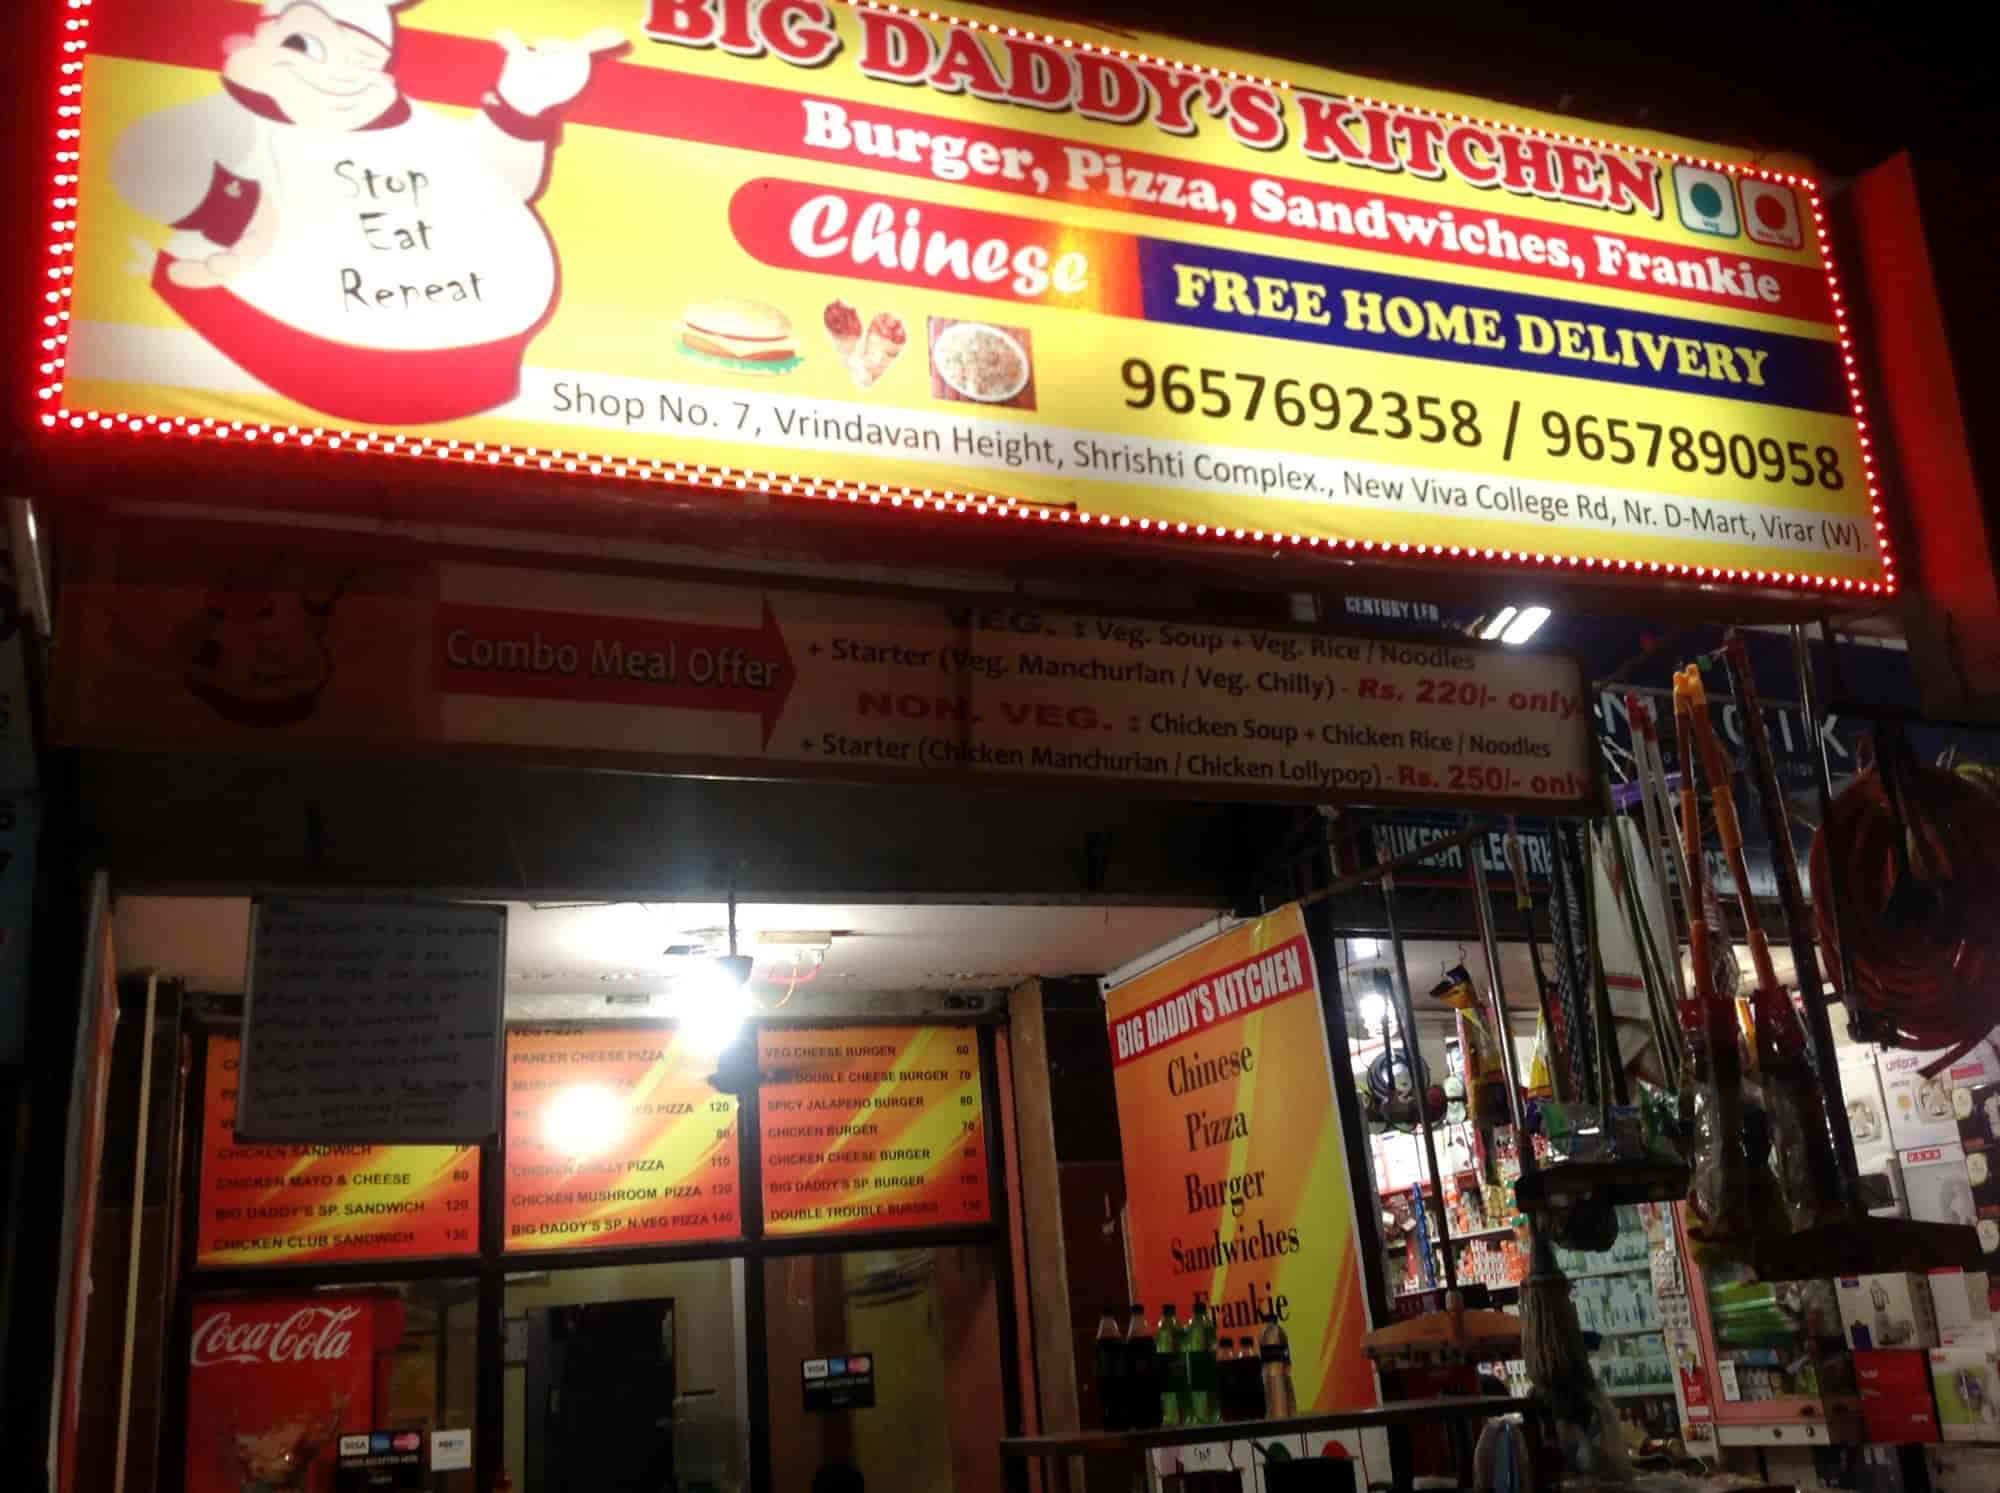 Big Daddys Kitchen Photos Virar West Mumbai Pictures Images Gallery Justdial